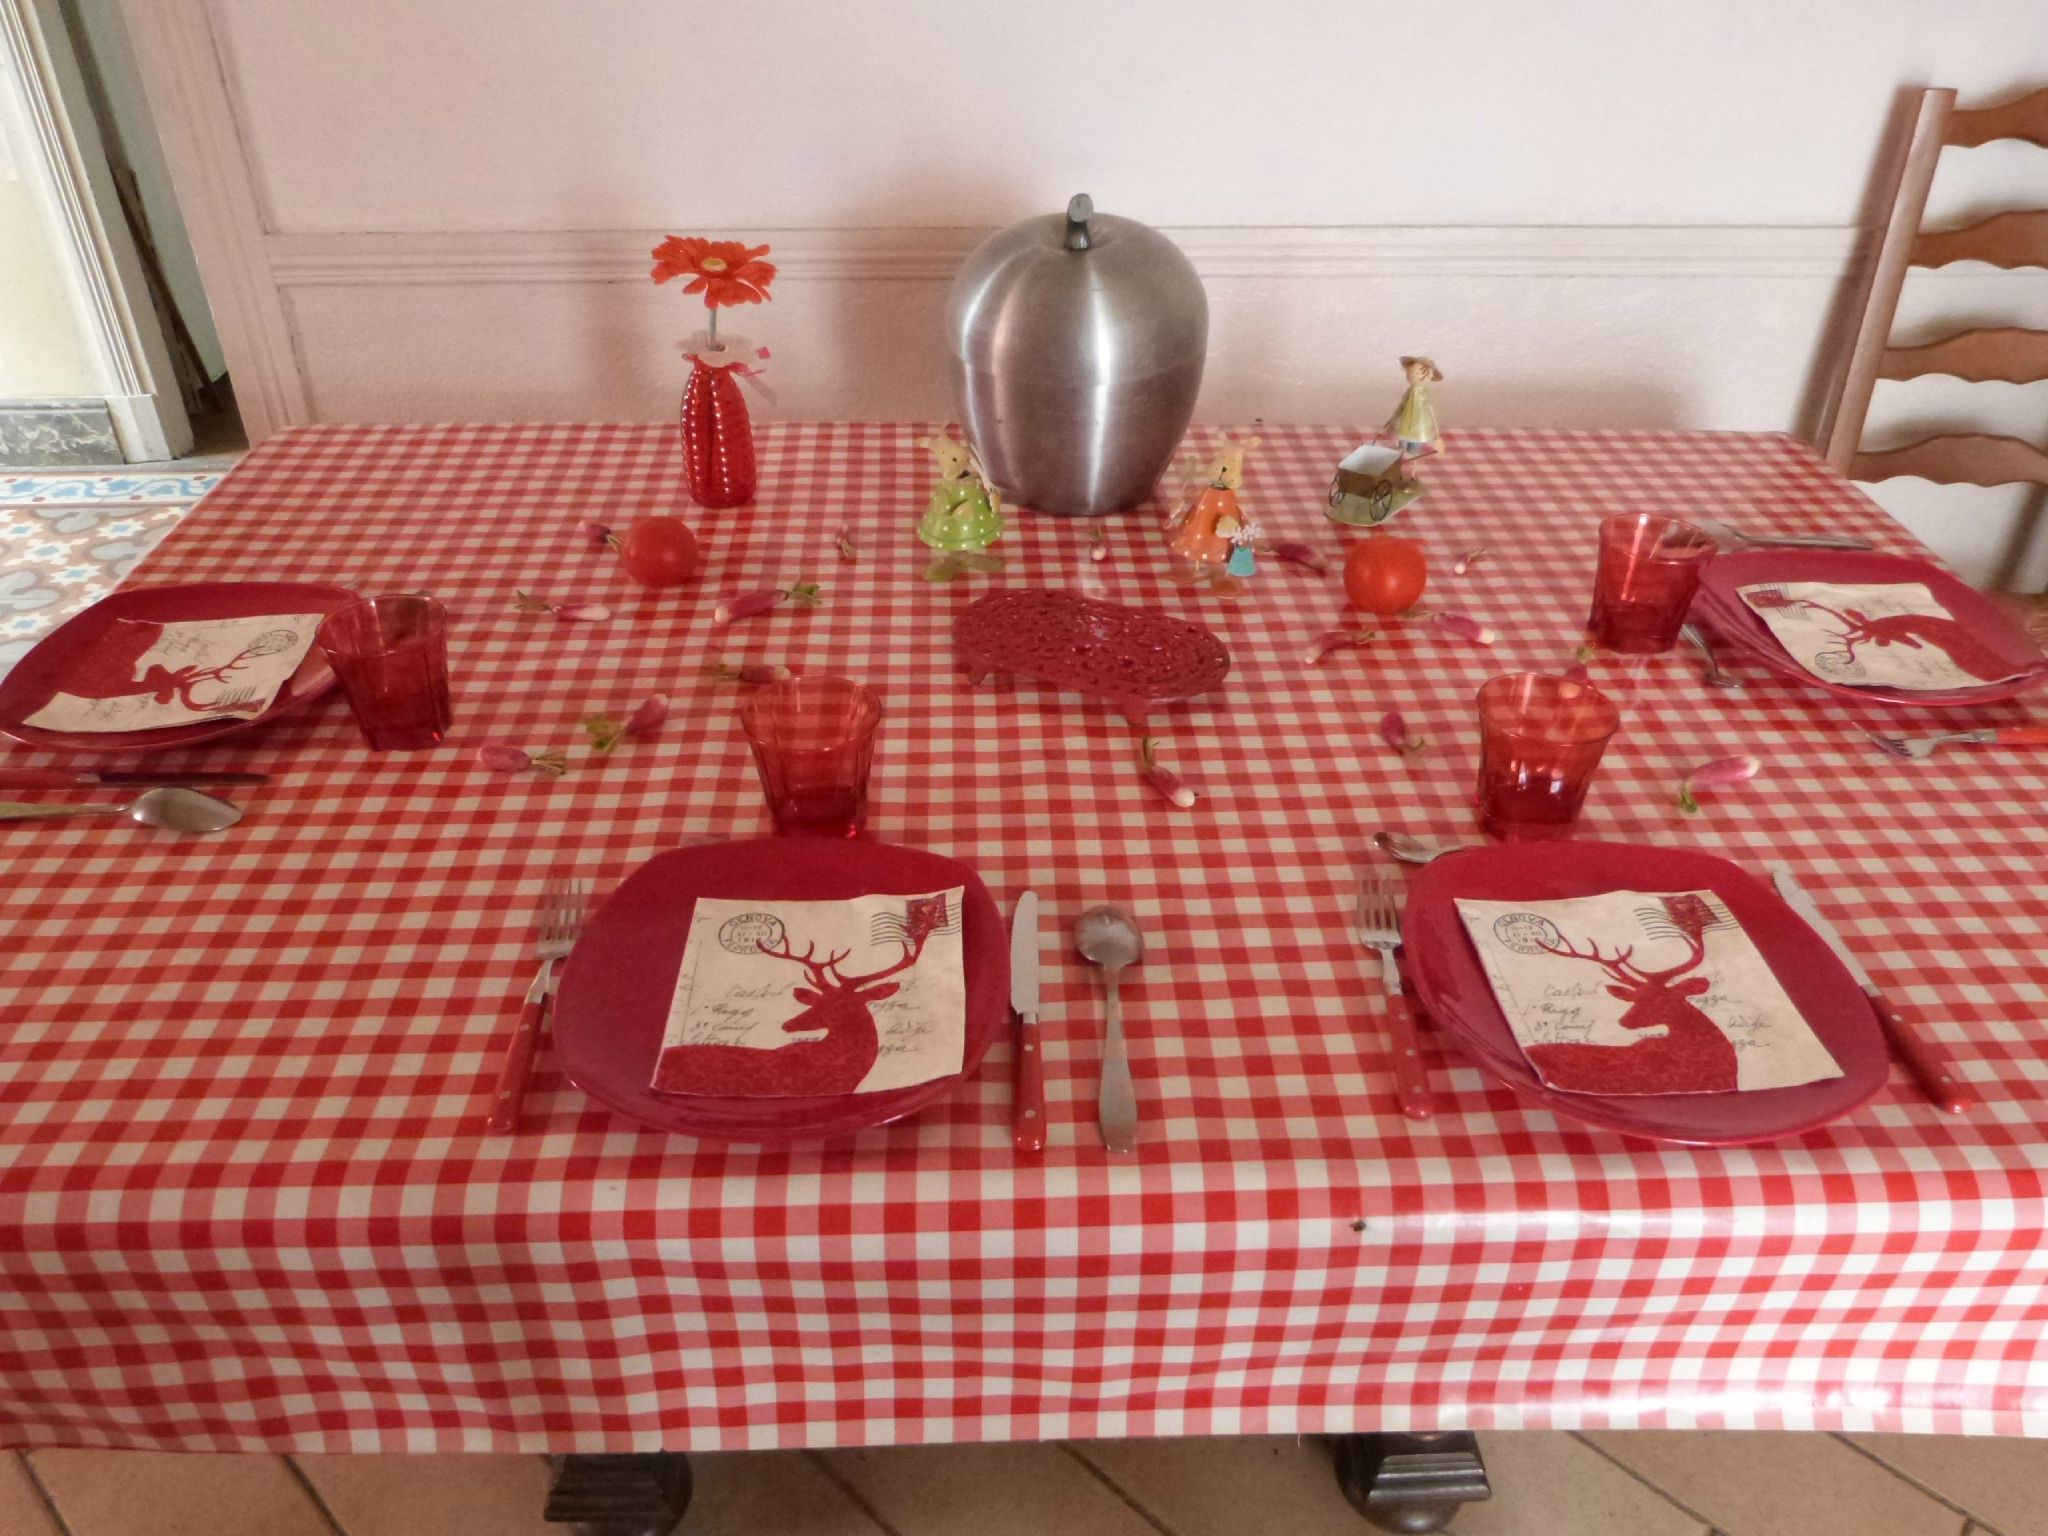 D co avec toile cir e rouge vichy tables et d co d 39 estelle for Nappe et serviettes de table